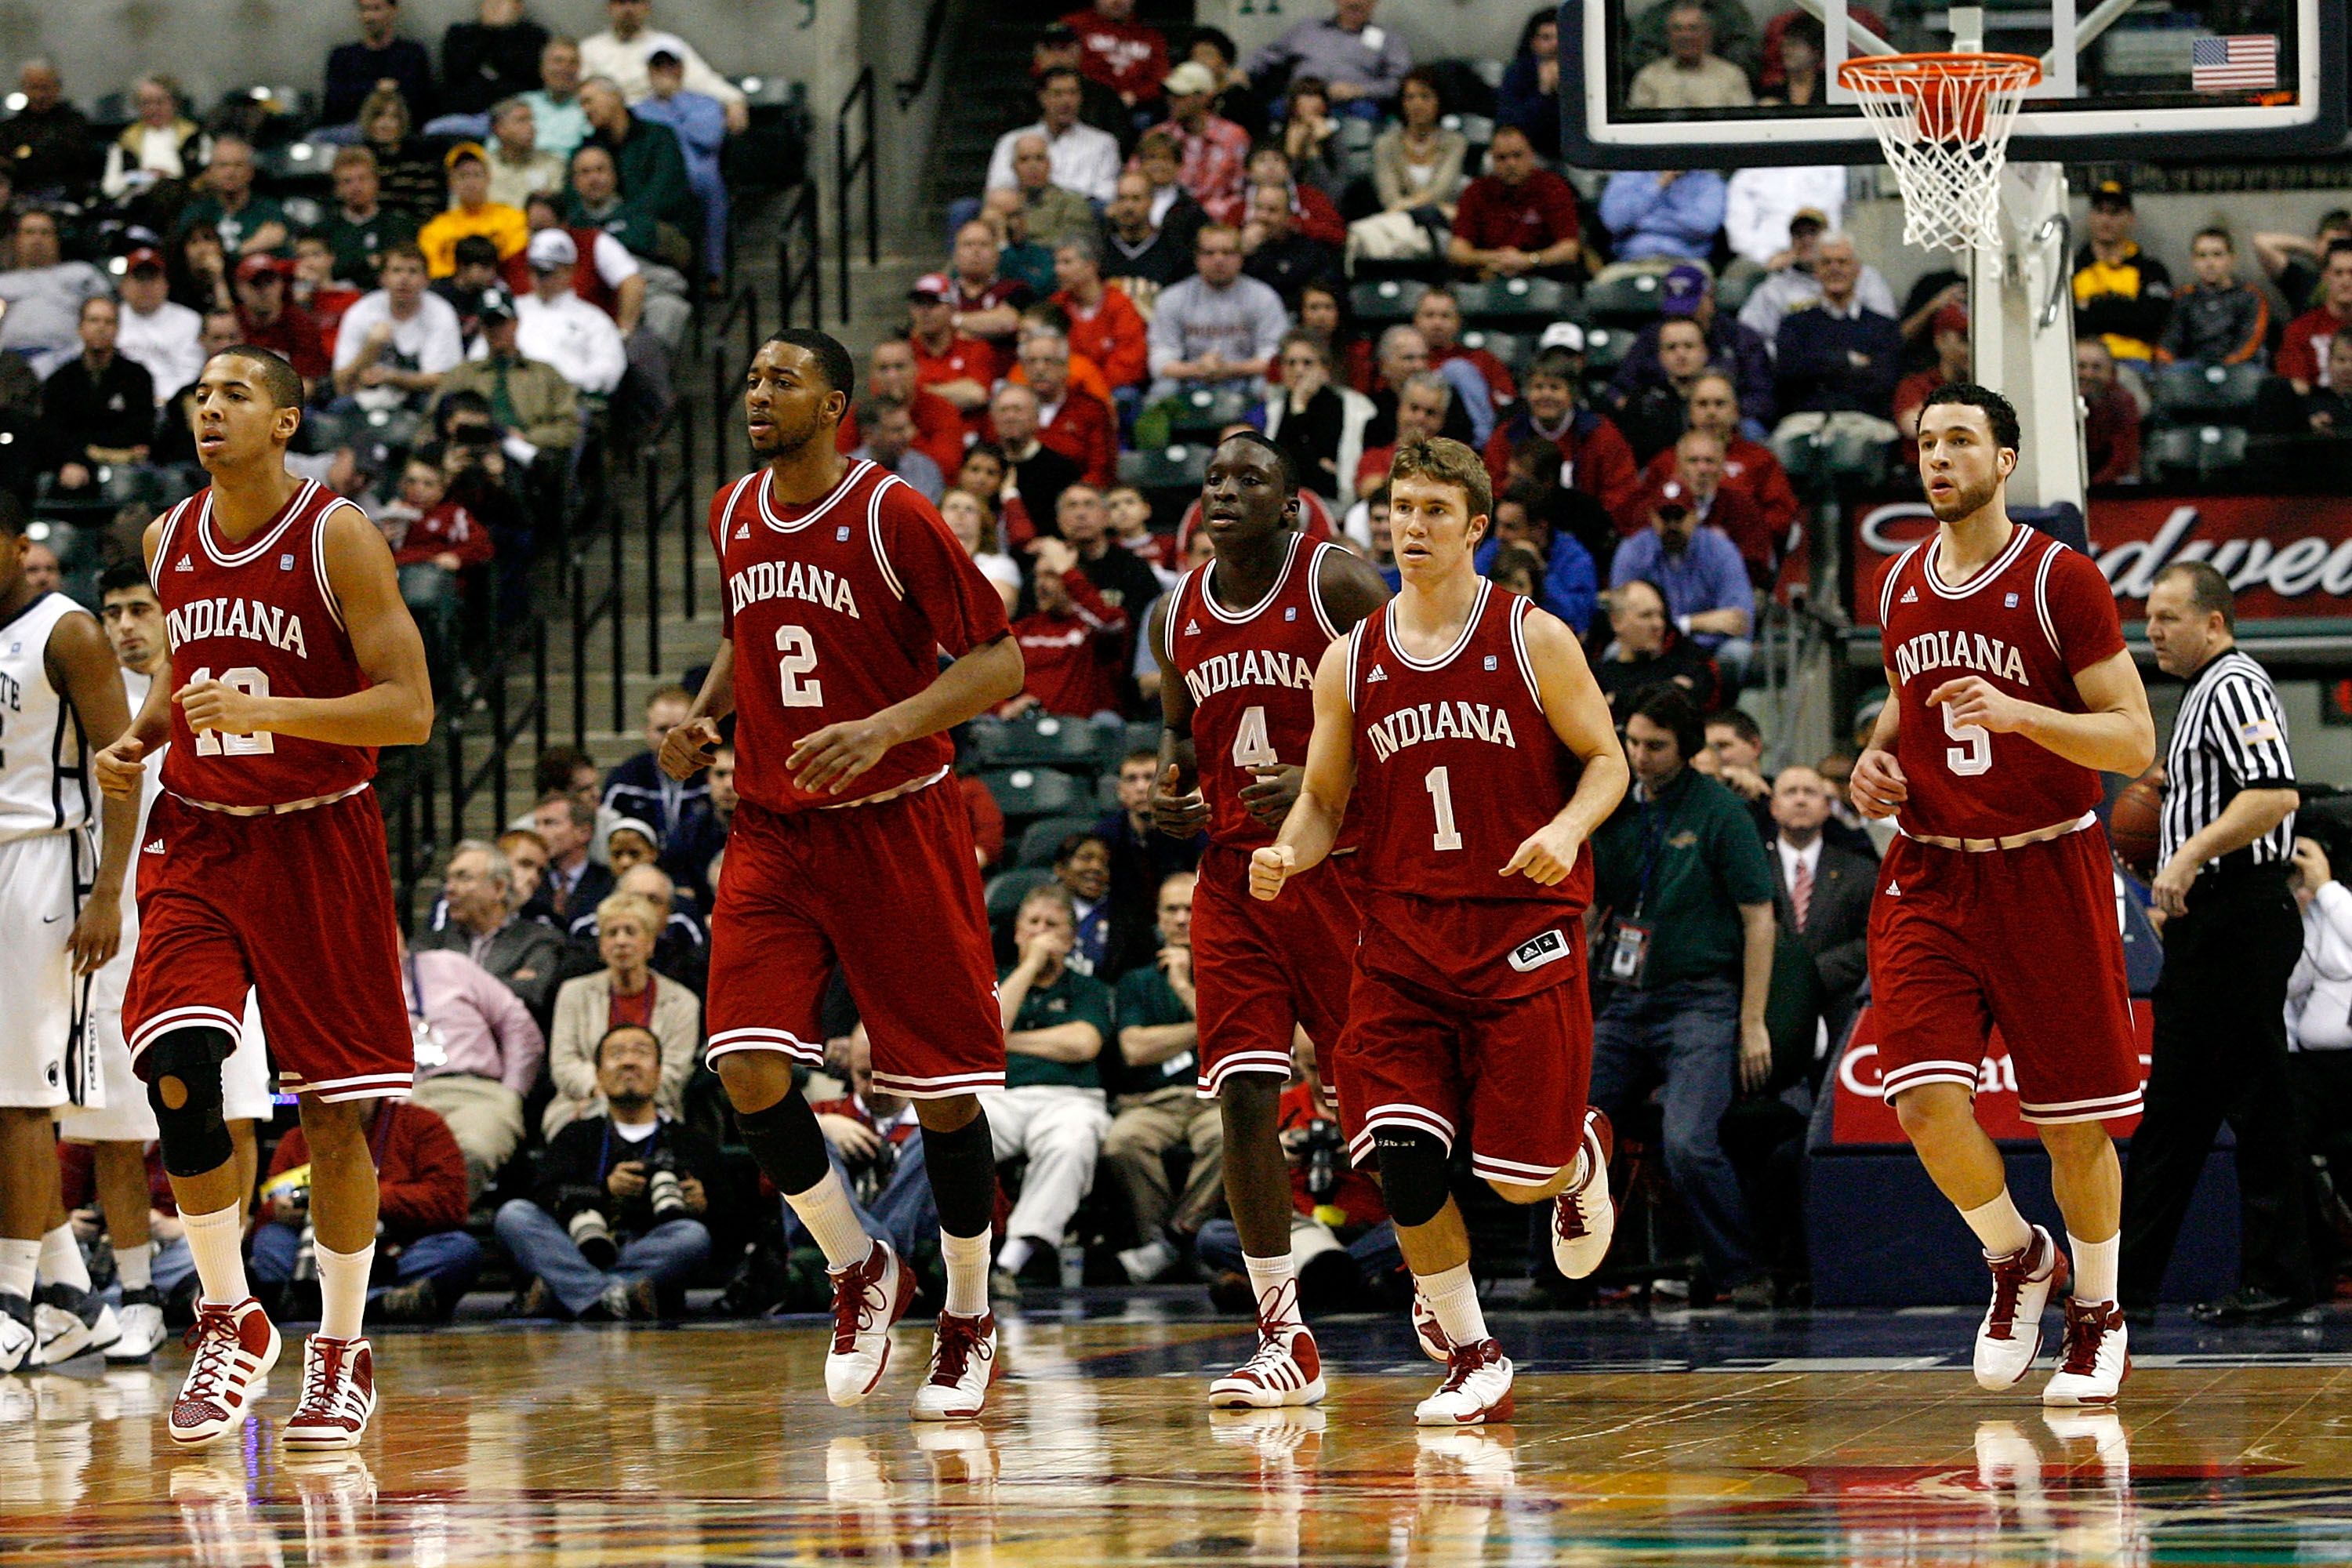 INDIANAPOLIS, IN - MARCH 10:  (L-R) Verdell Jones III #12, Christian Watford #2, Victor Oladipo #4, Jordan Hulls #1 and Jeremiah Rivers #5 of the Indiana Hoosiers run towards the bench for a timeout against the Penn State Nittany Lions during the first ro